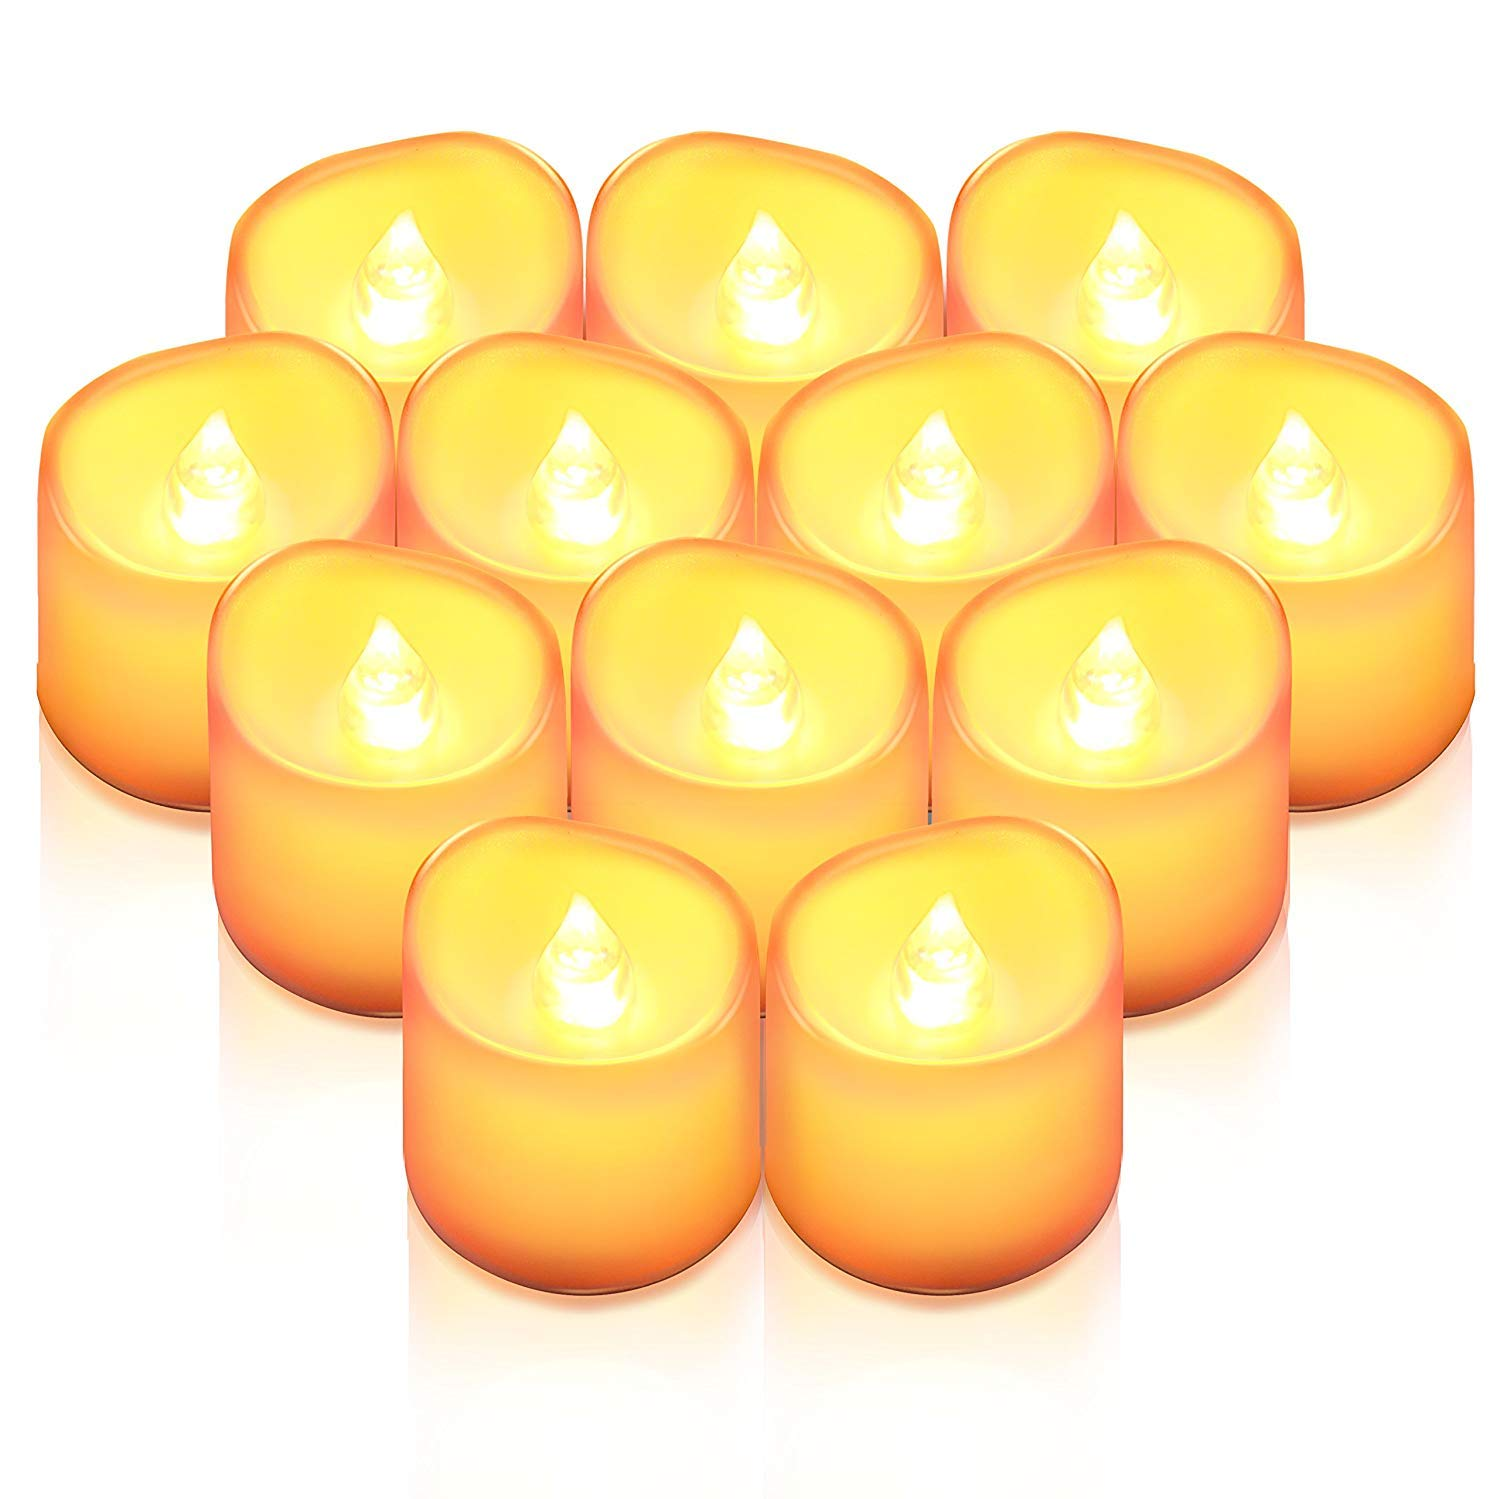 (Upgraded) Flameless Candles, 12 PCS LED Tea Light Candles, Realistic Flickering Votive Candle Lights for Christmas, Party & Wedding Decor, Wave Open Battery Included (No Remote)